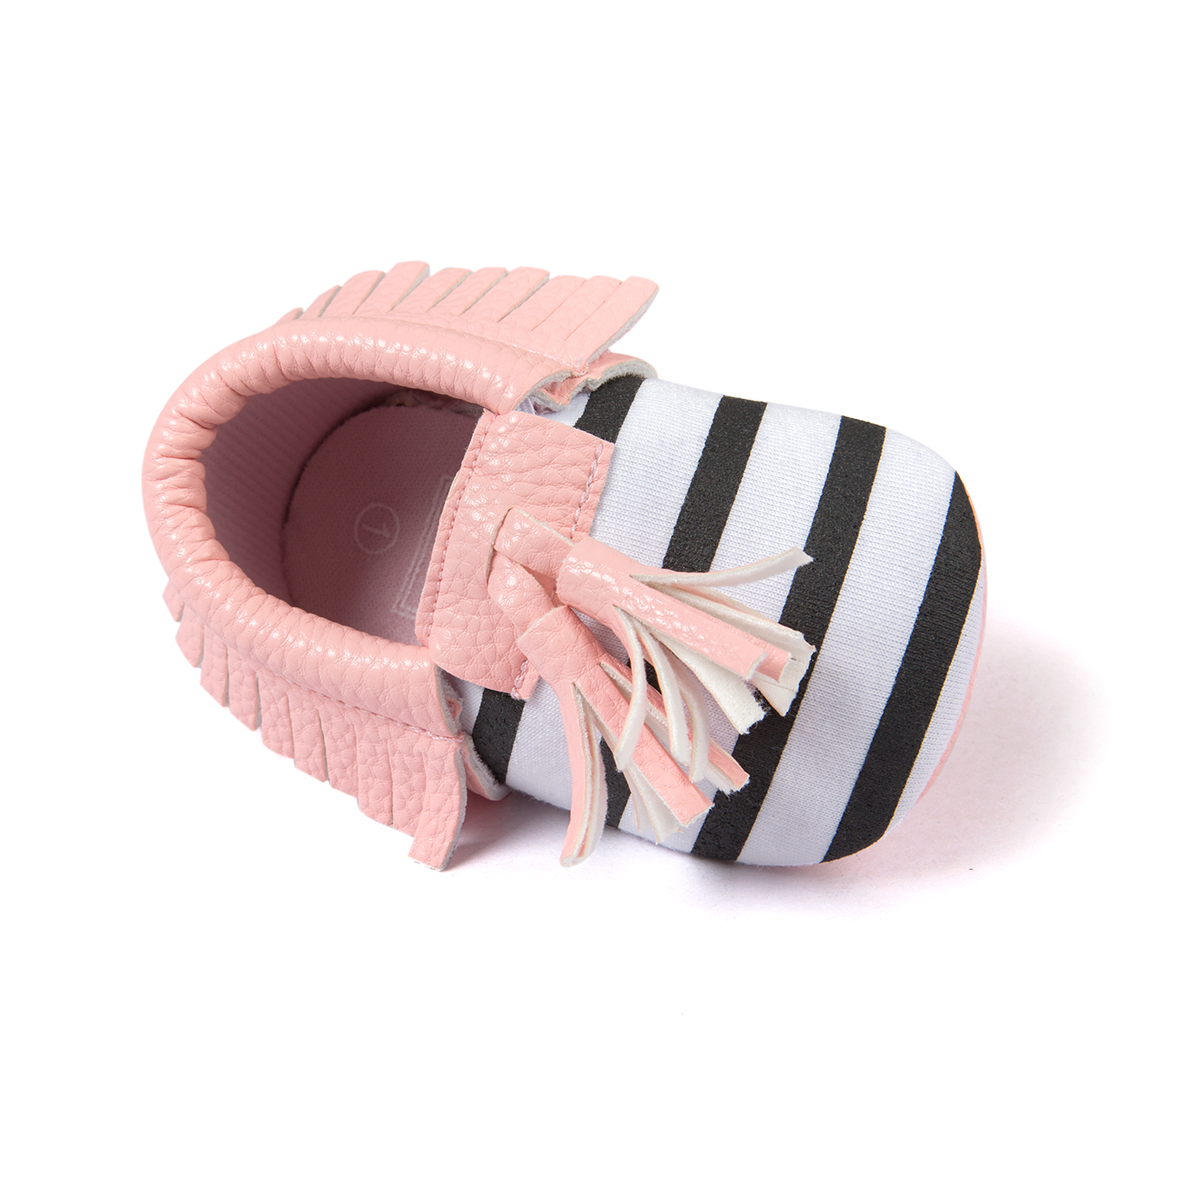 Leather-With-Matte-Fringed-Baby-Moccasins-Toddler-Shoes-Baby-Stripe-Tassel-Infant-Newborn-Girls-Shoes-First-Walker-2219-5